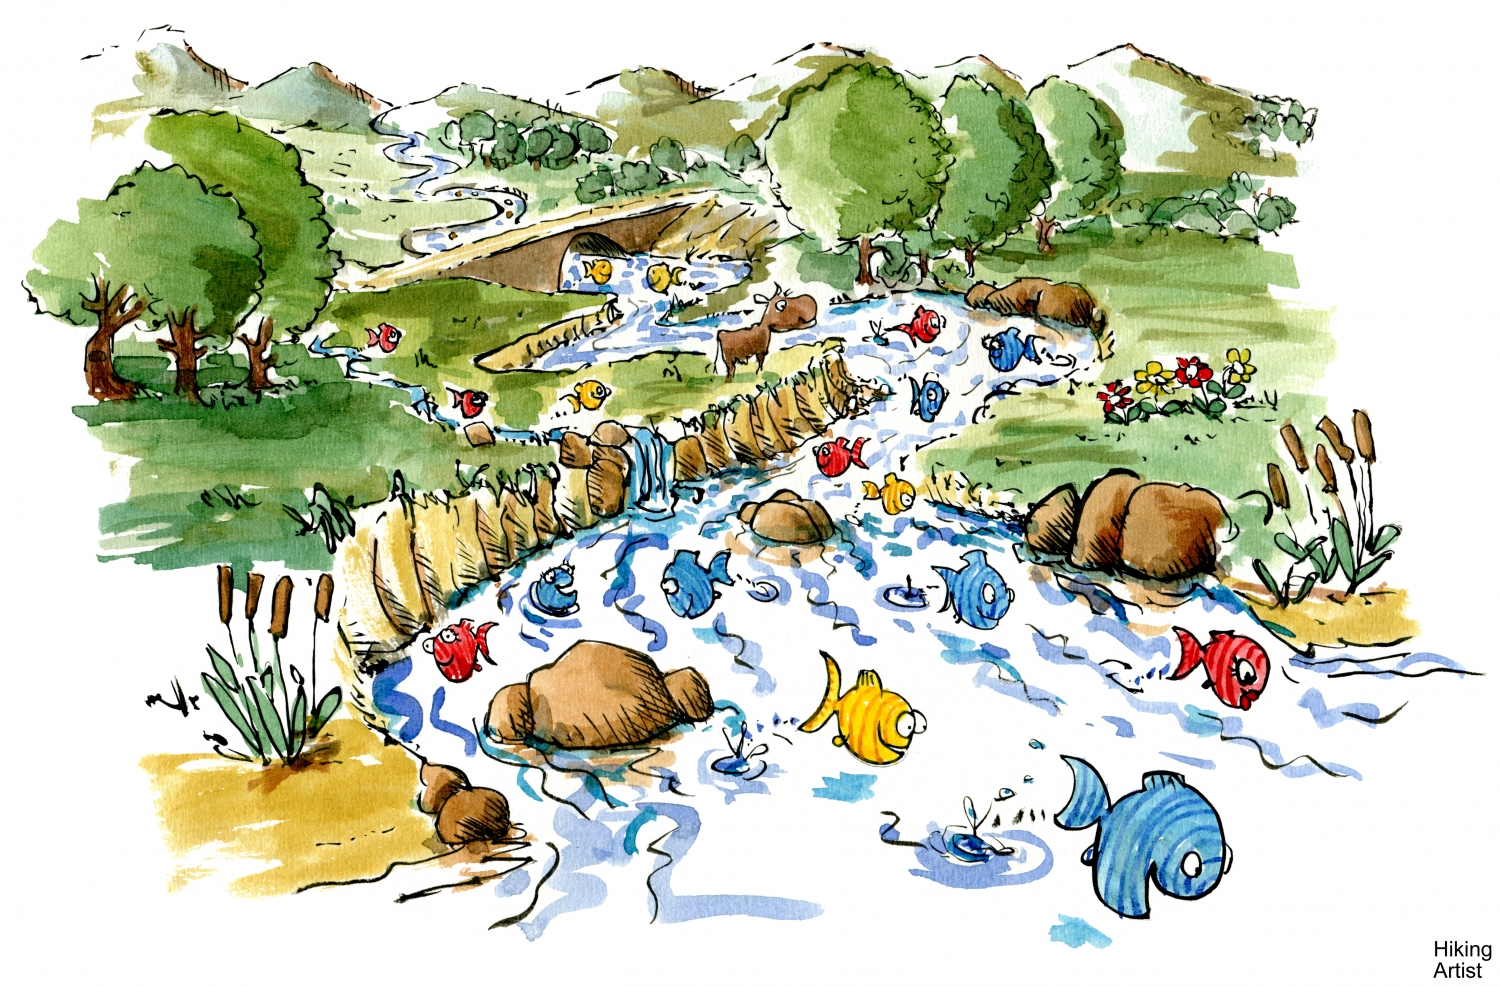 Fish Swimming In River Illustration